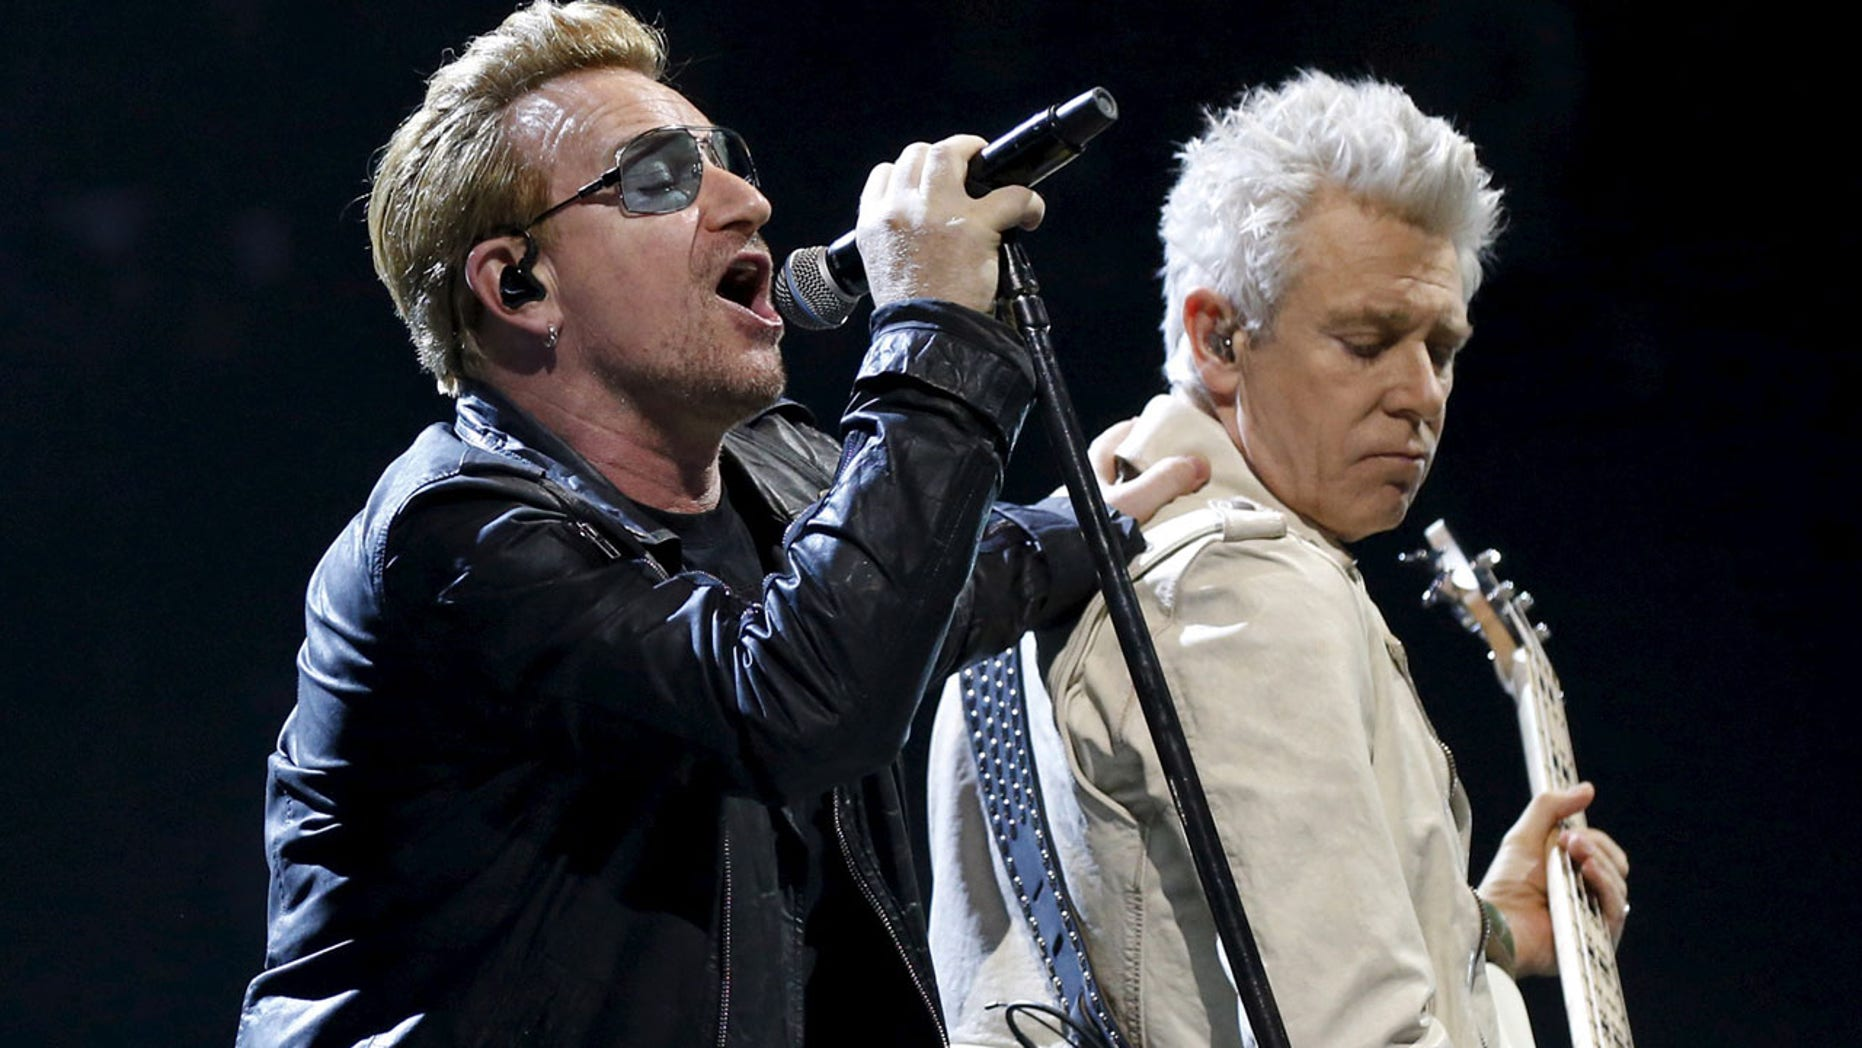 FILE 2015: Bono and Adam Clayton of Irish band U2 perform during their concert at the AccorHotels Arena in Paris.